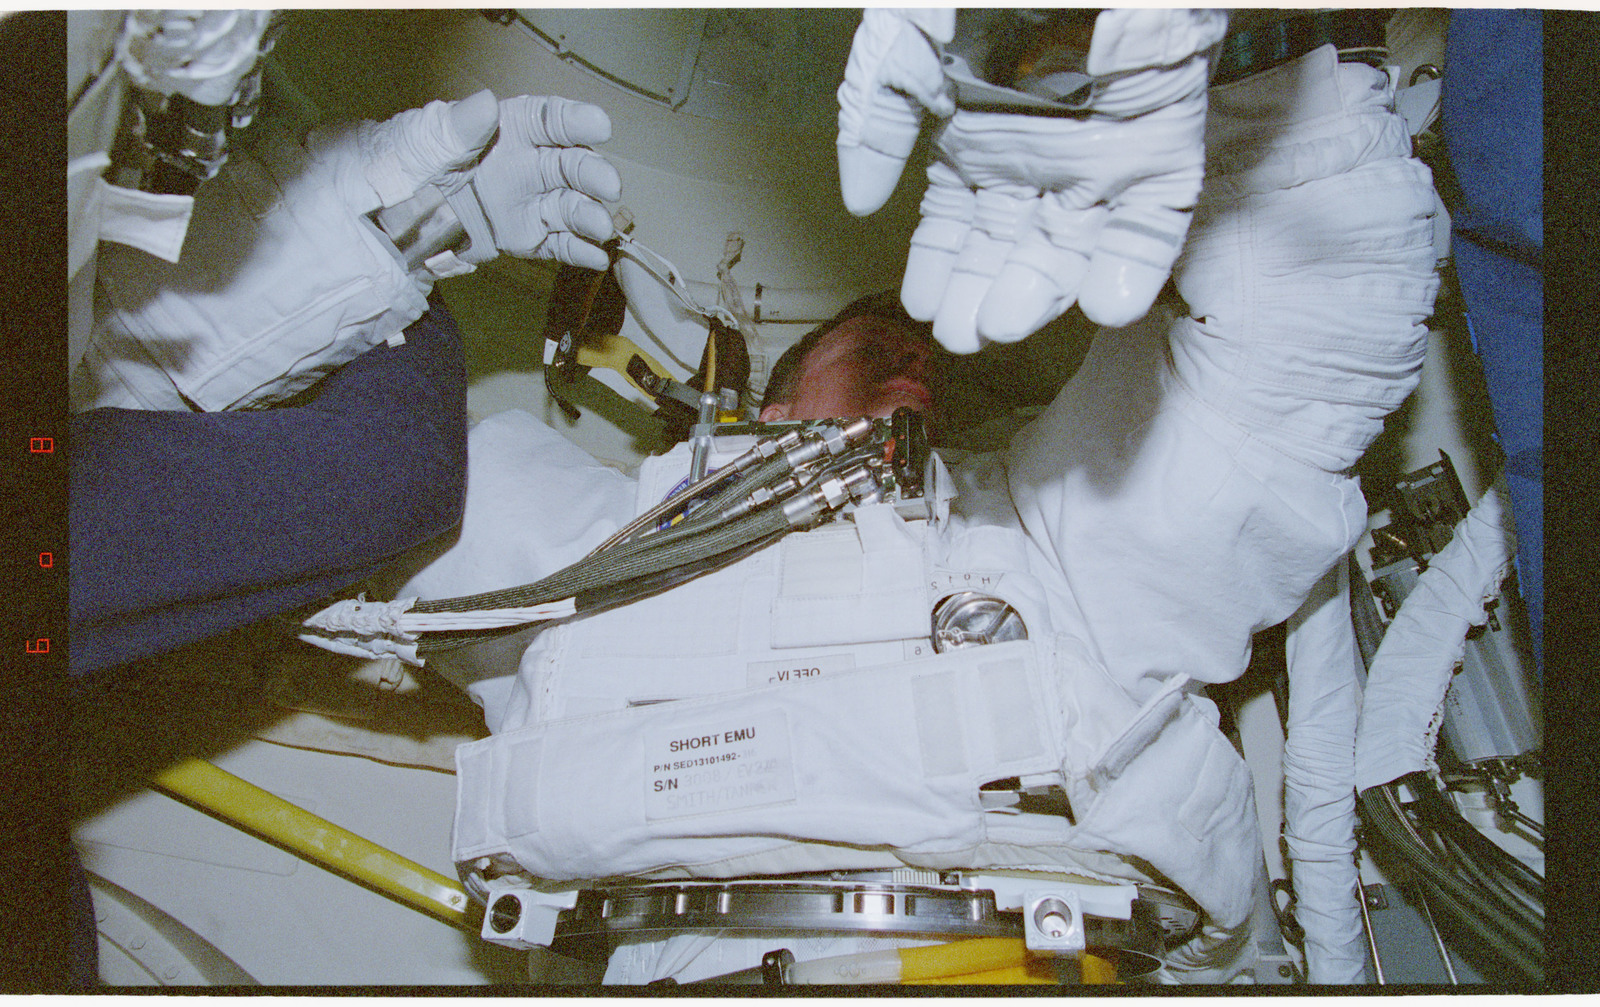 STS082-356-035 - STS-082 - Suiting up activities in the external airlock